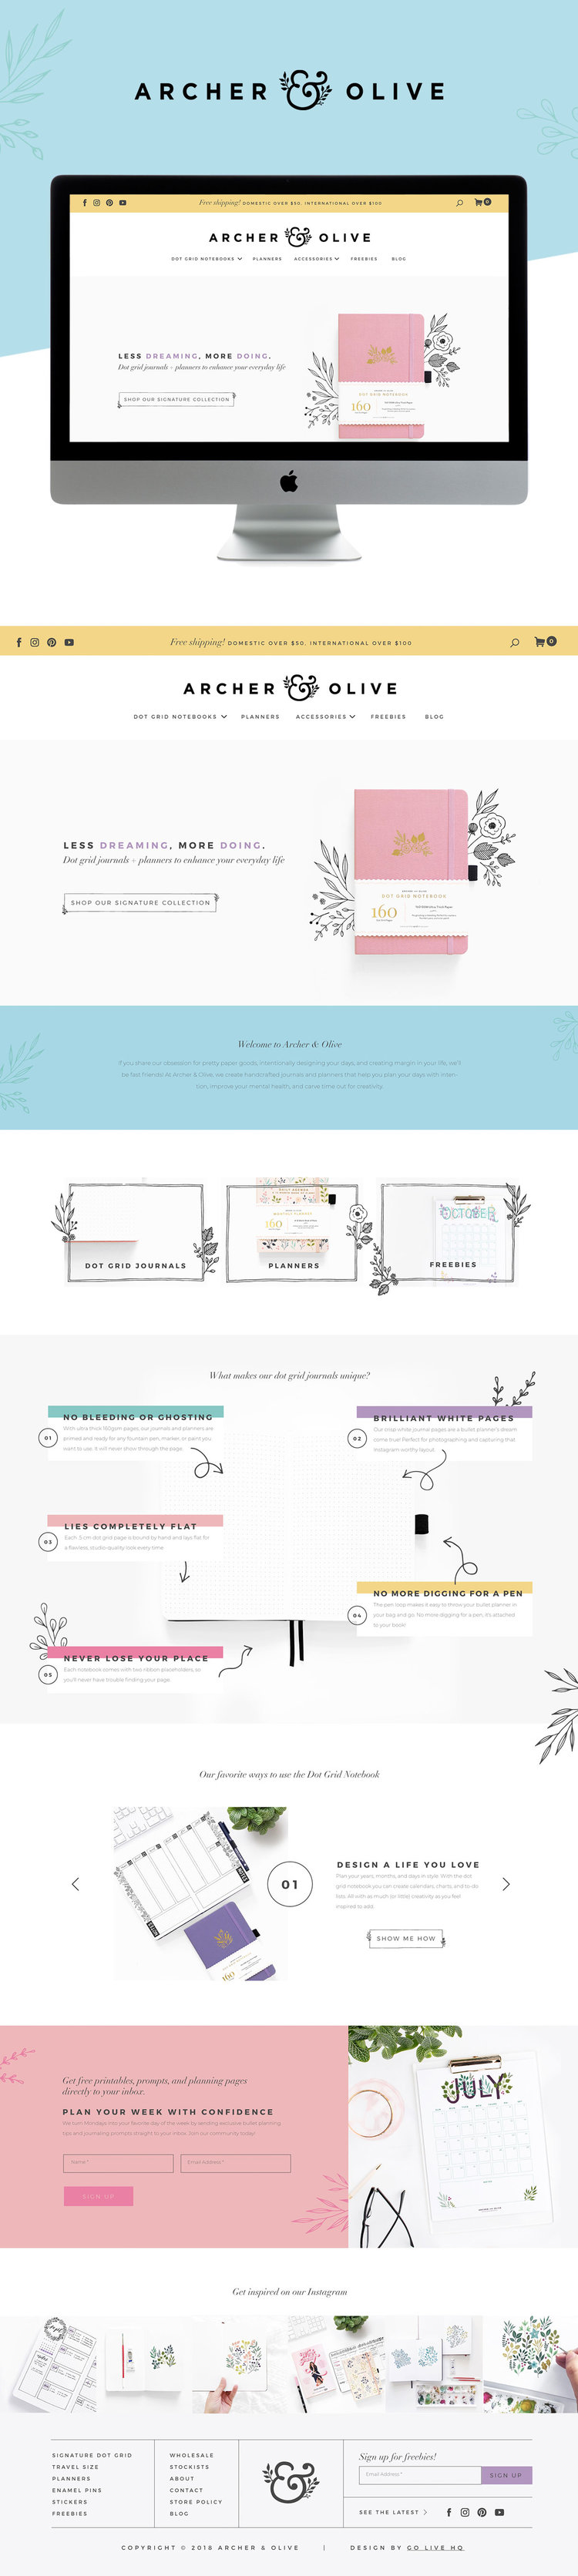 Playful,+Modern+and+Colorful+Website+Design+for+Stationary+Brand+_+Design+by+Go+Live+HQ.jpg